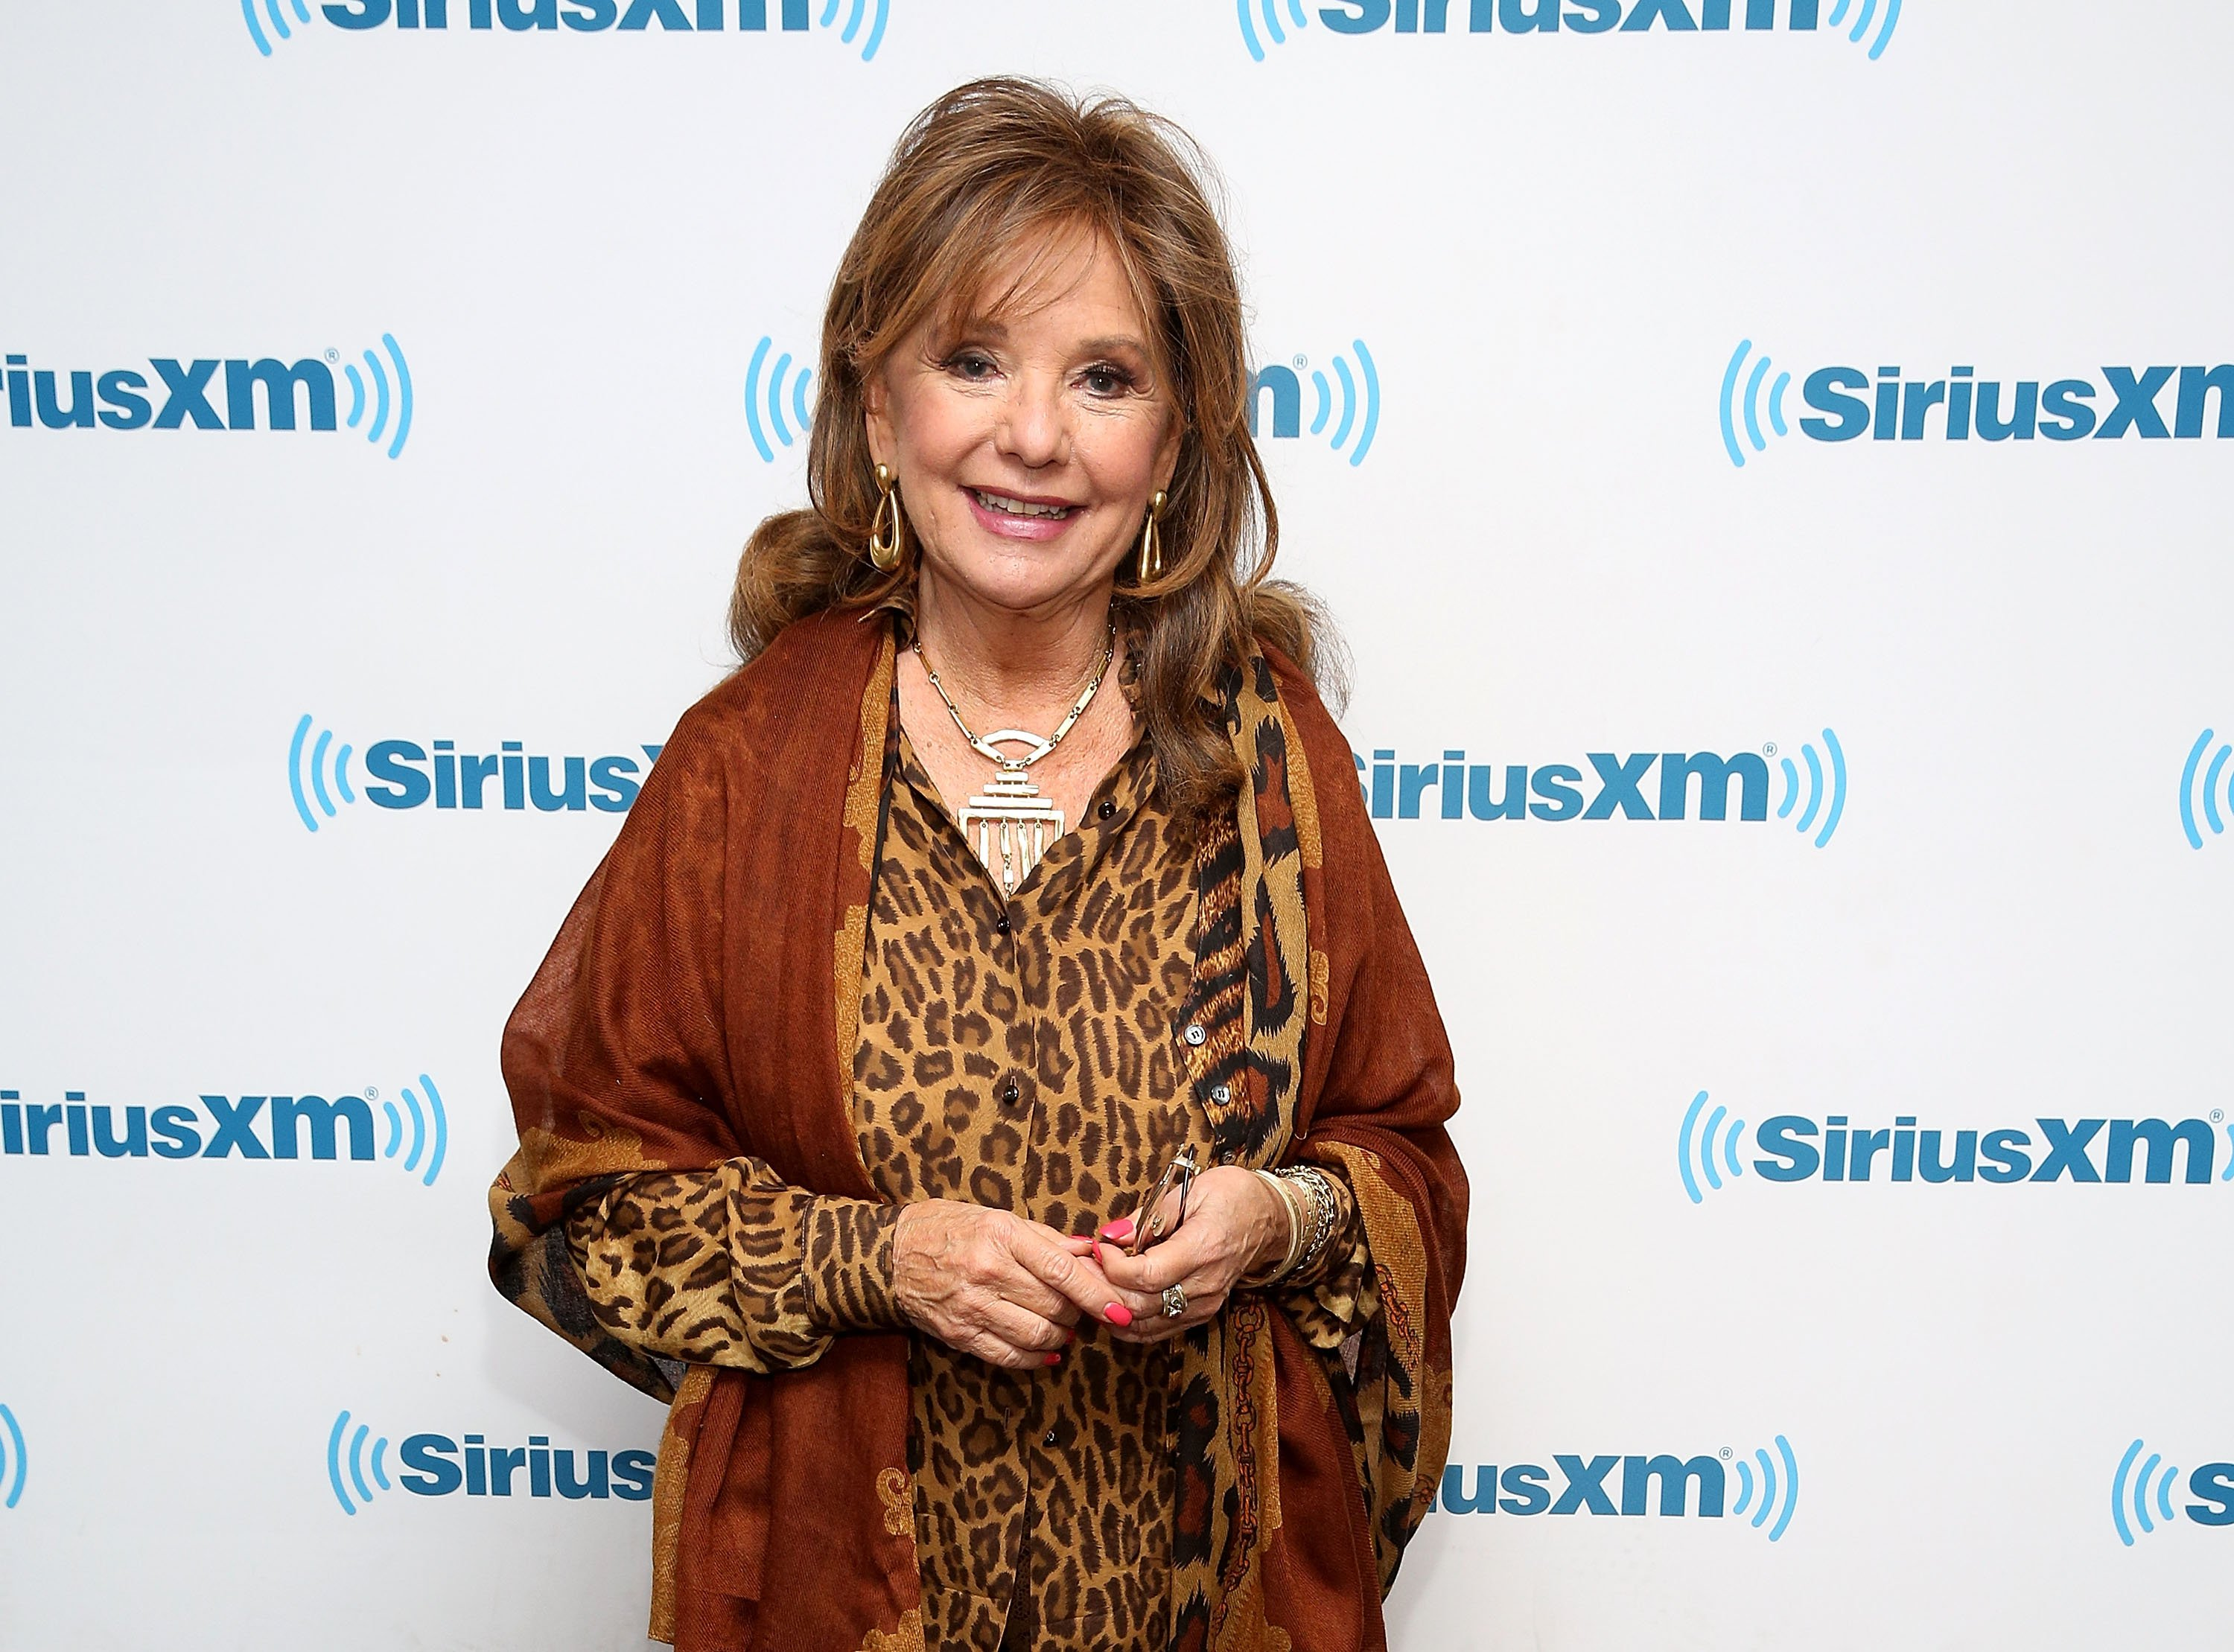 Image Source: Getty Images/Robin Marchant/Dawn Wells visits at SiriusXM Studio on September 23, 2016 in New York City